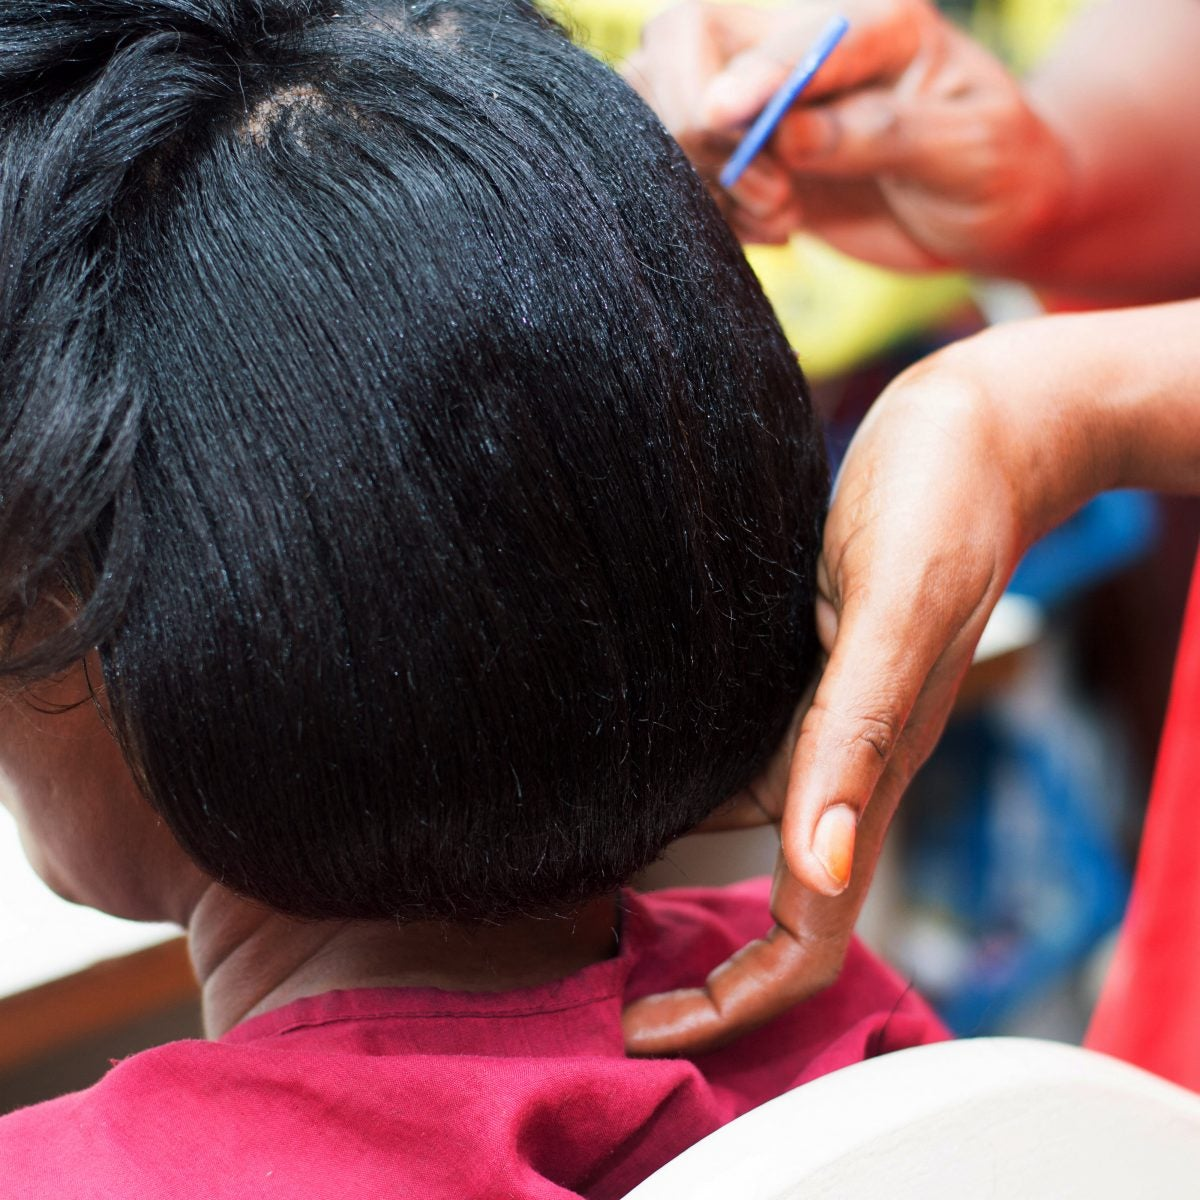 Study of Black Women Links Frequent Use of Lye-based Hair Relaxers to Breast Cancer